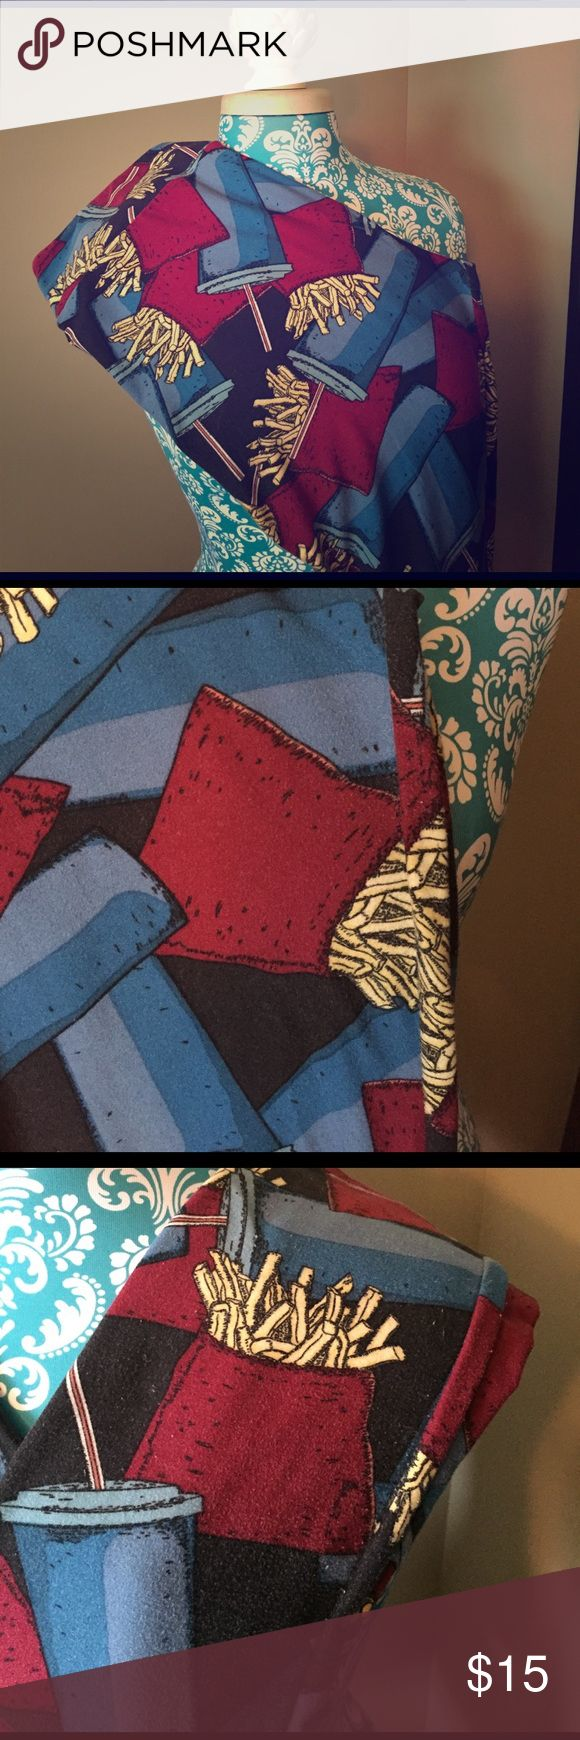 """LuLaRoe TC Fry & Drink Leggings 🍟 LuLaRoe TC Fry & Drink Leggings. I can no longer wear TC leggings. Thick, soft & buttery! Black background with blue & teal cups and maroon/yellow French fries. So FUN!!! I wore these out of the house once to the movies & mostly as pjs. They have been worn a handful of times and I have noticed several dark pair of LLR seem to fade instantly. There are signs of wear, some piling & fading as seen in the pics. I have not tried to """"shave"""" any of it. They have…"""